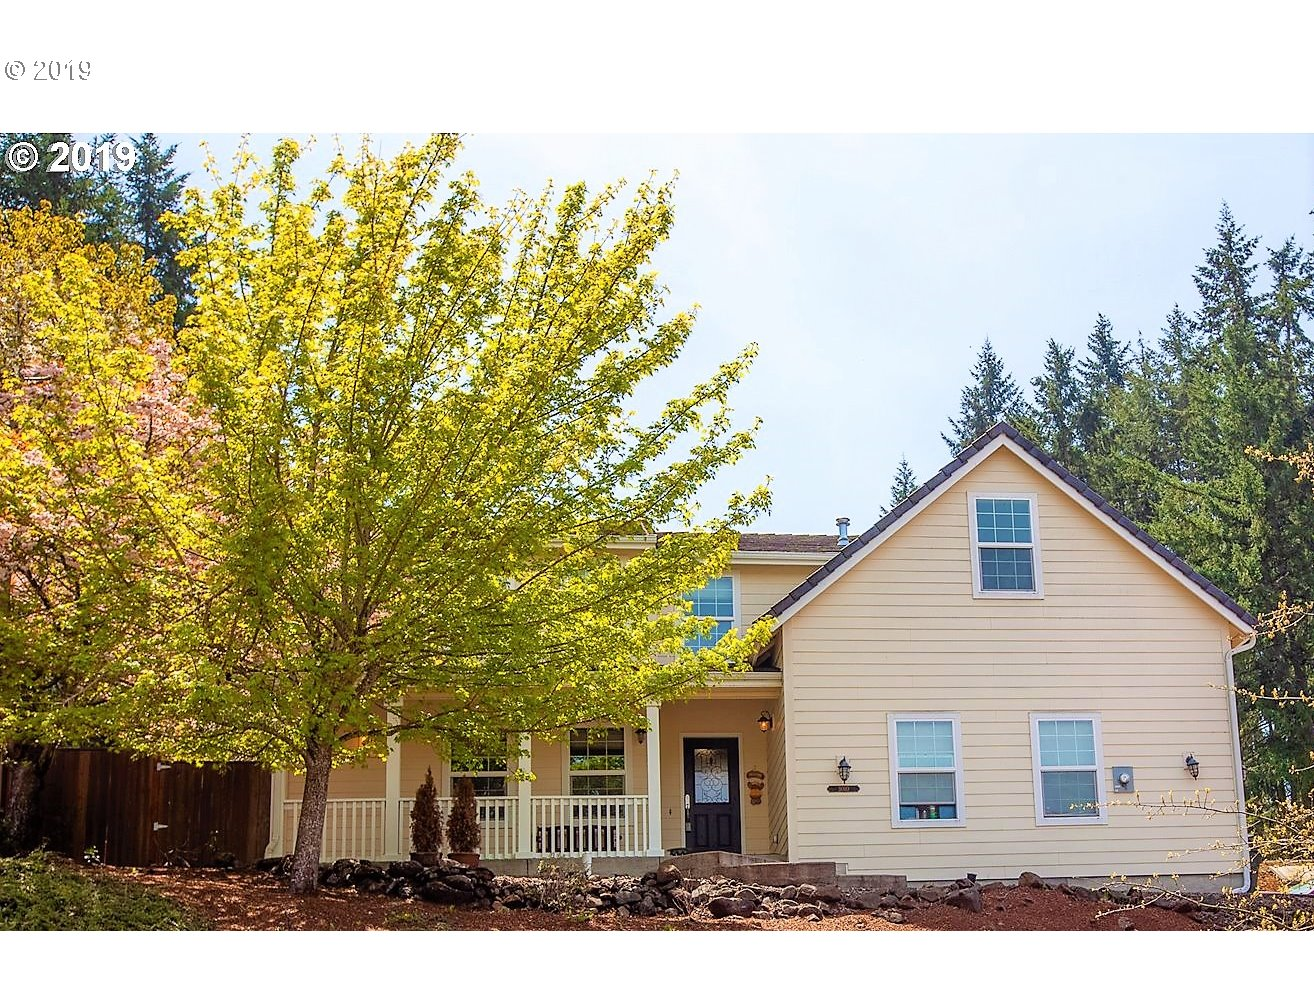 The Eugene Housing Market Demystified: Our 2019 Real Estate Forecast